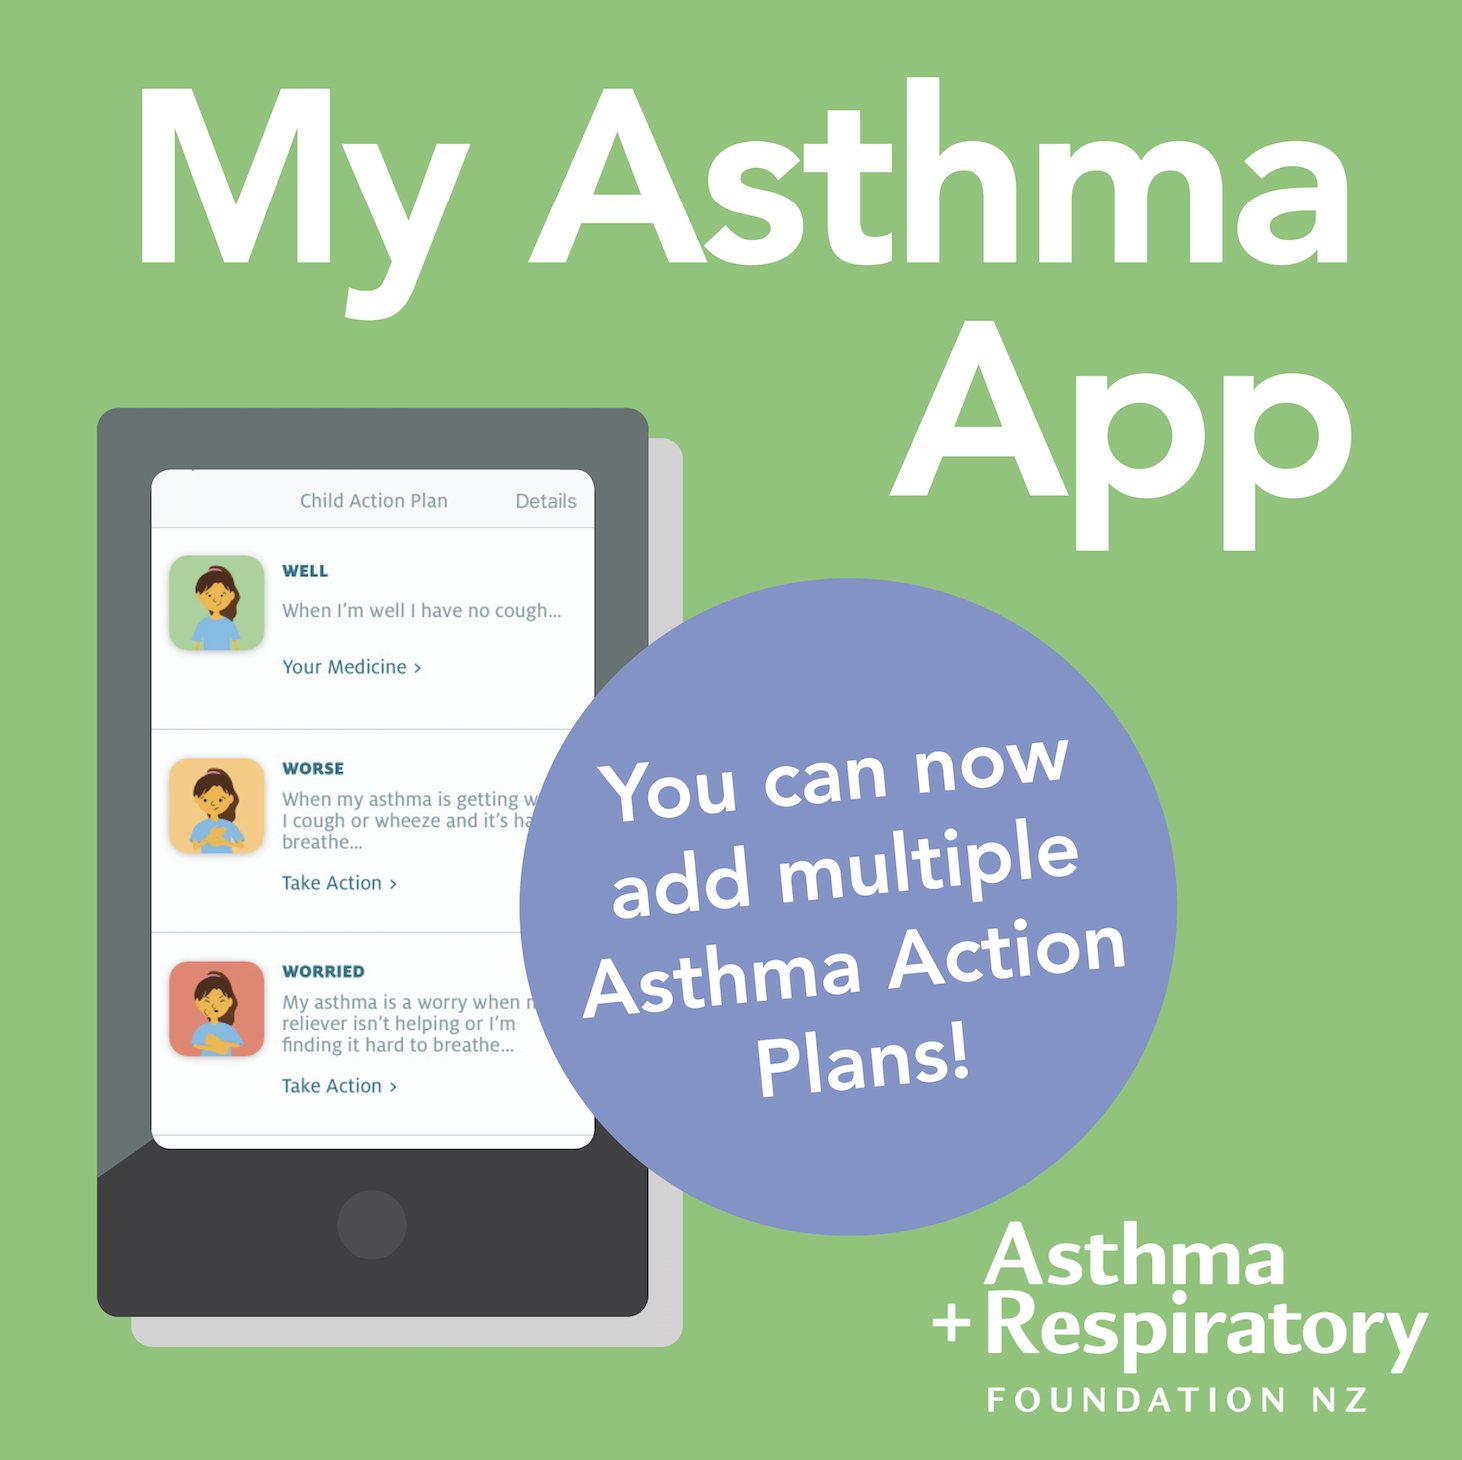 My-Asthma-app-phase-3.png#asset:3134